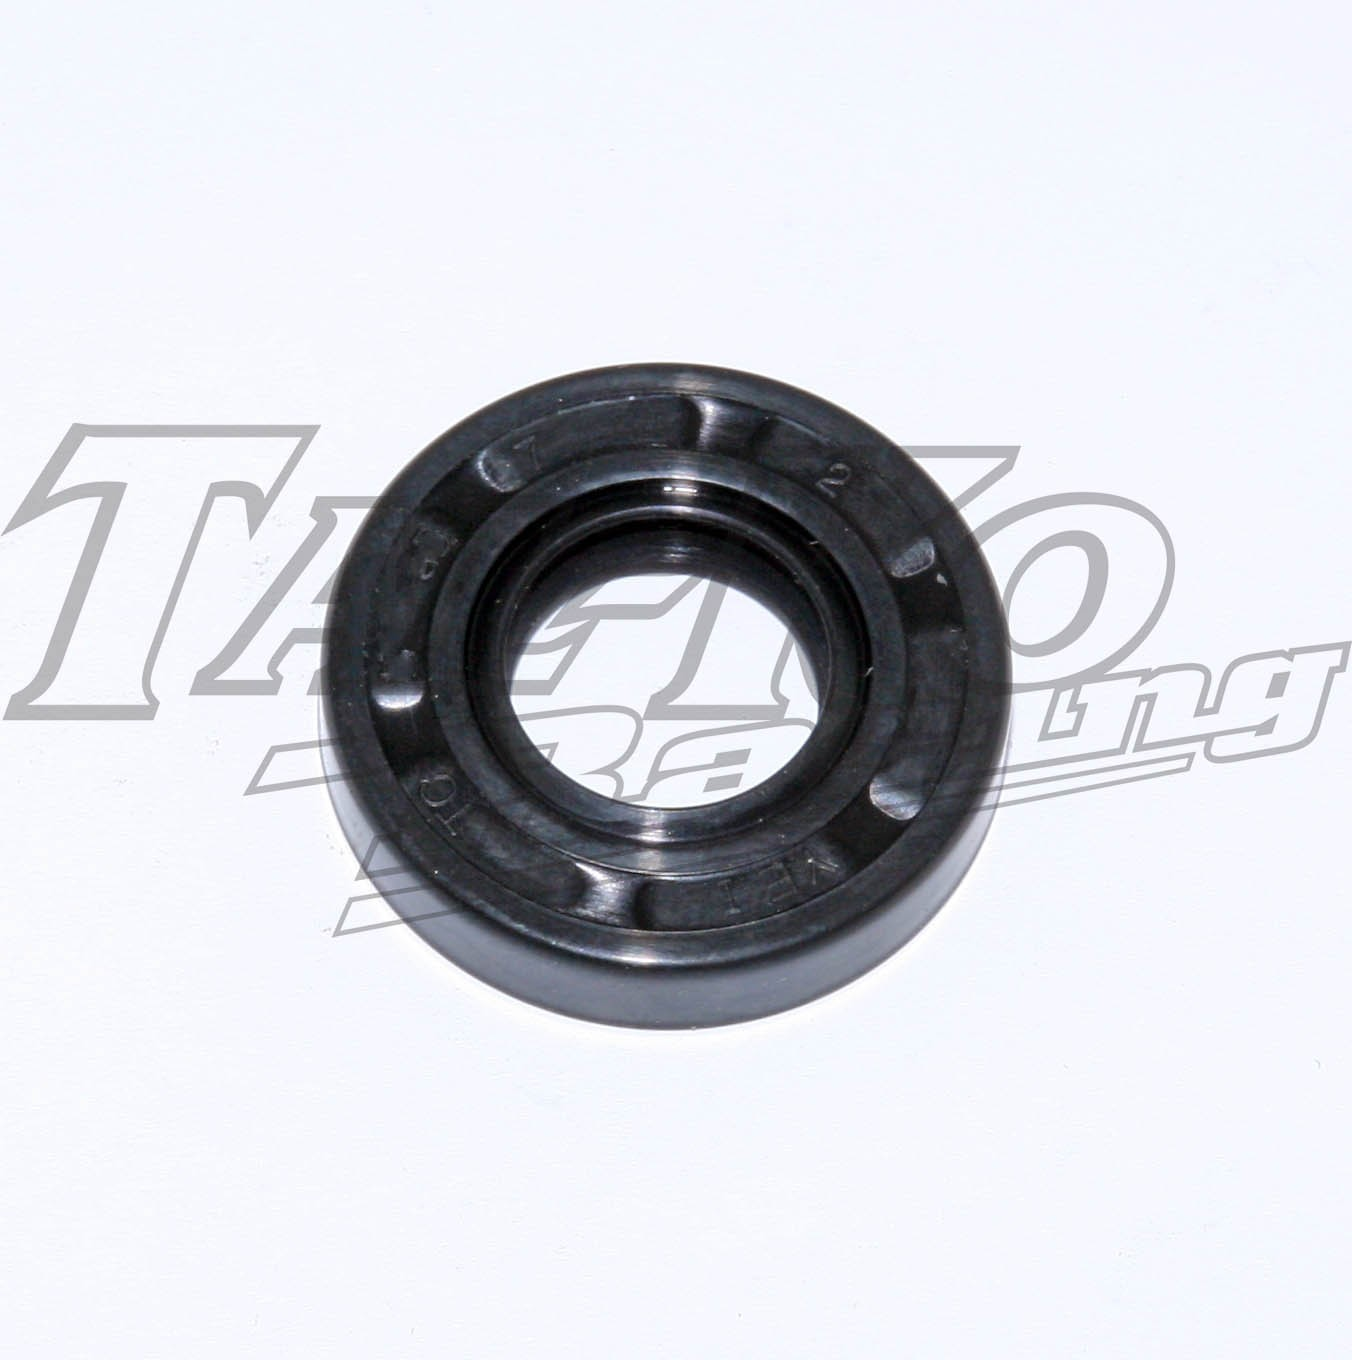 WTP60 OIL SEAL 17 x 35 x 7